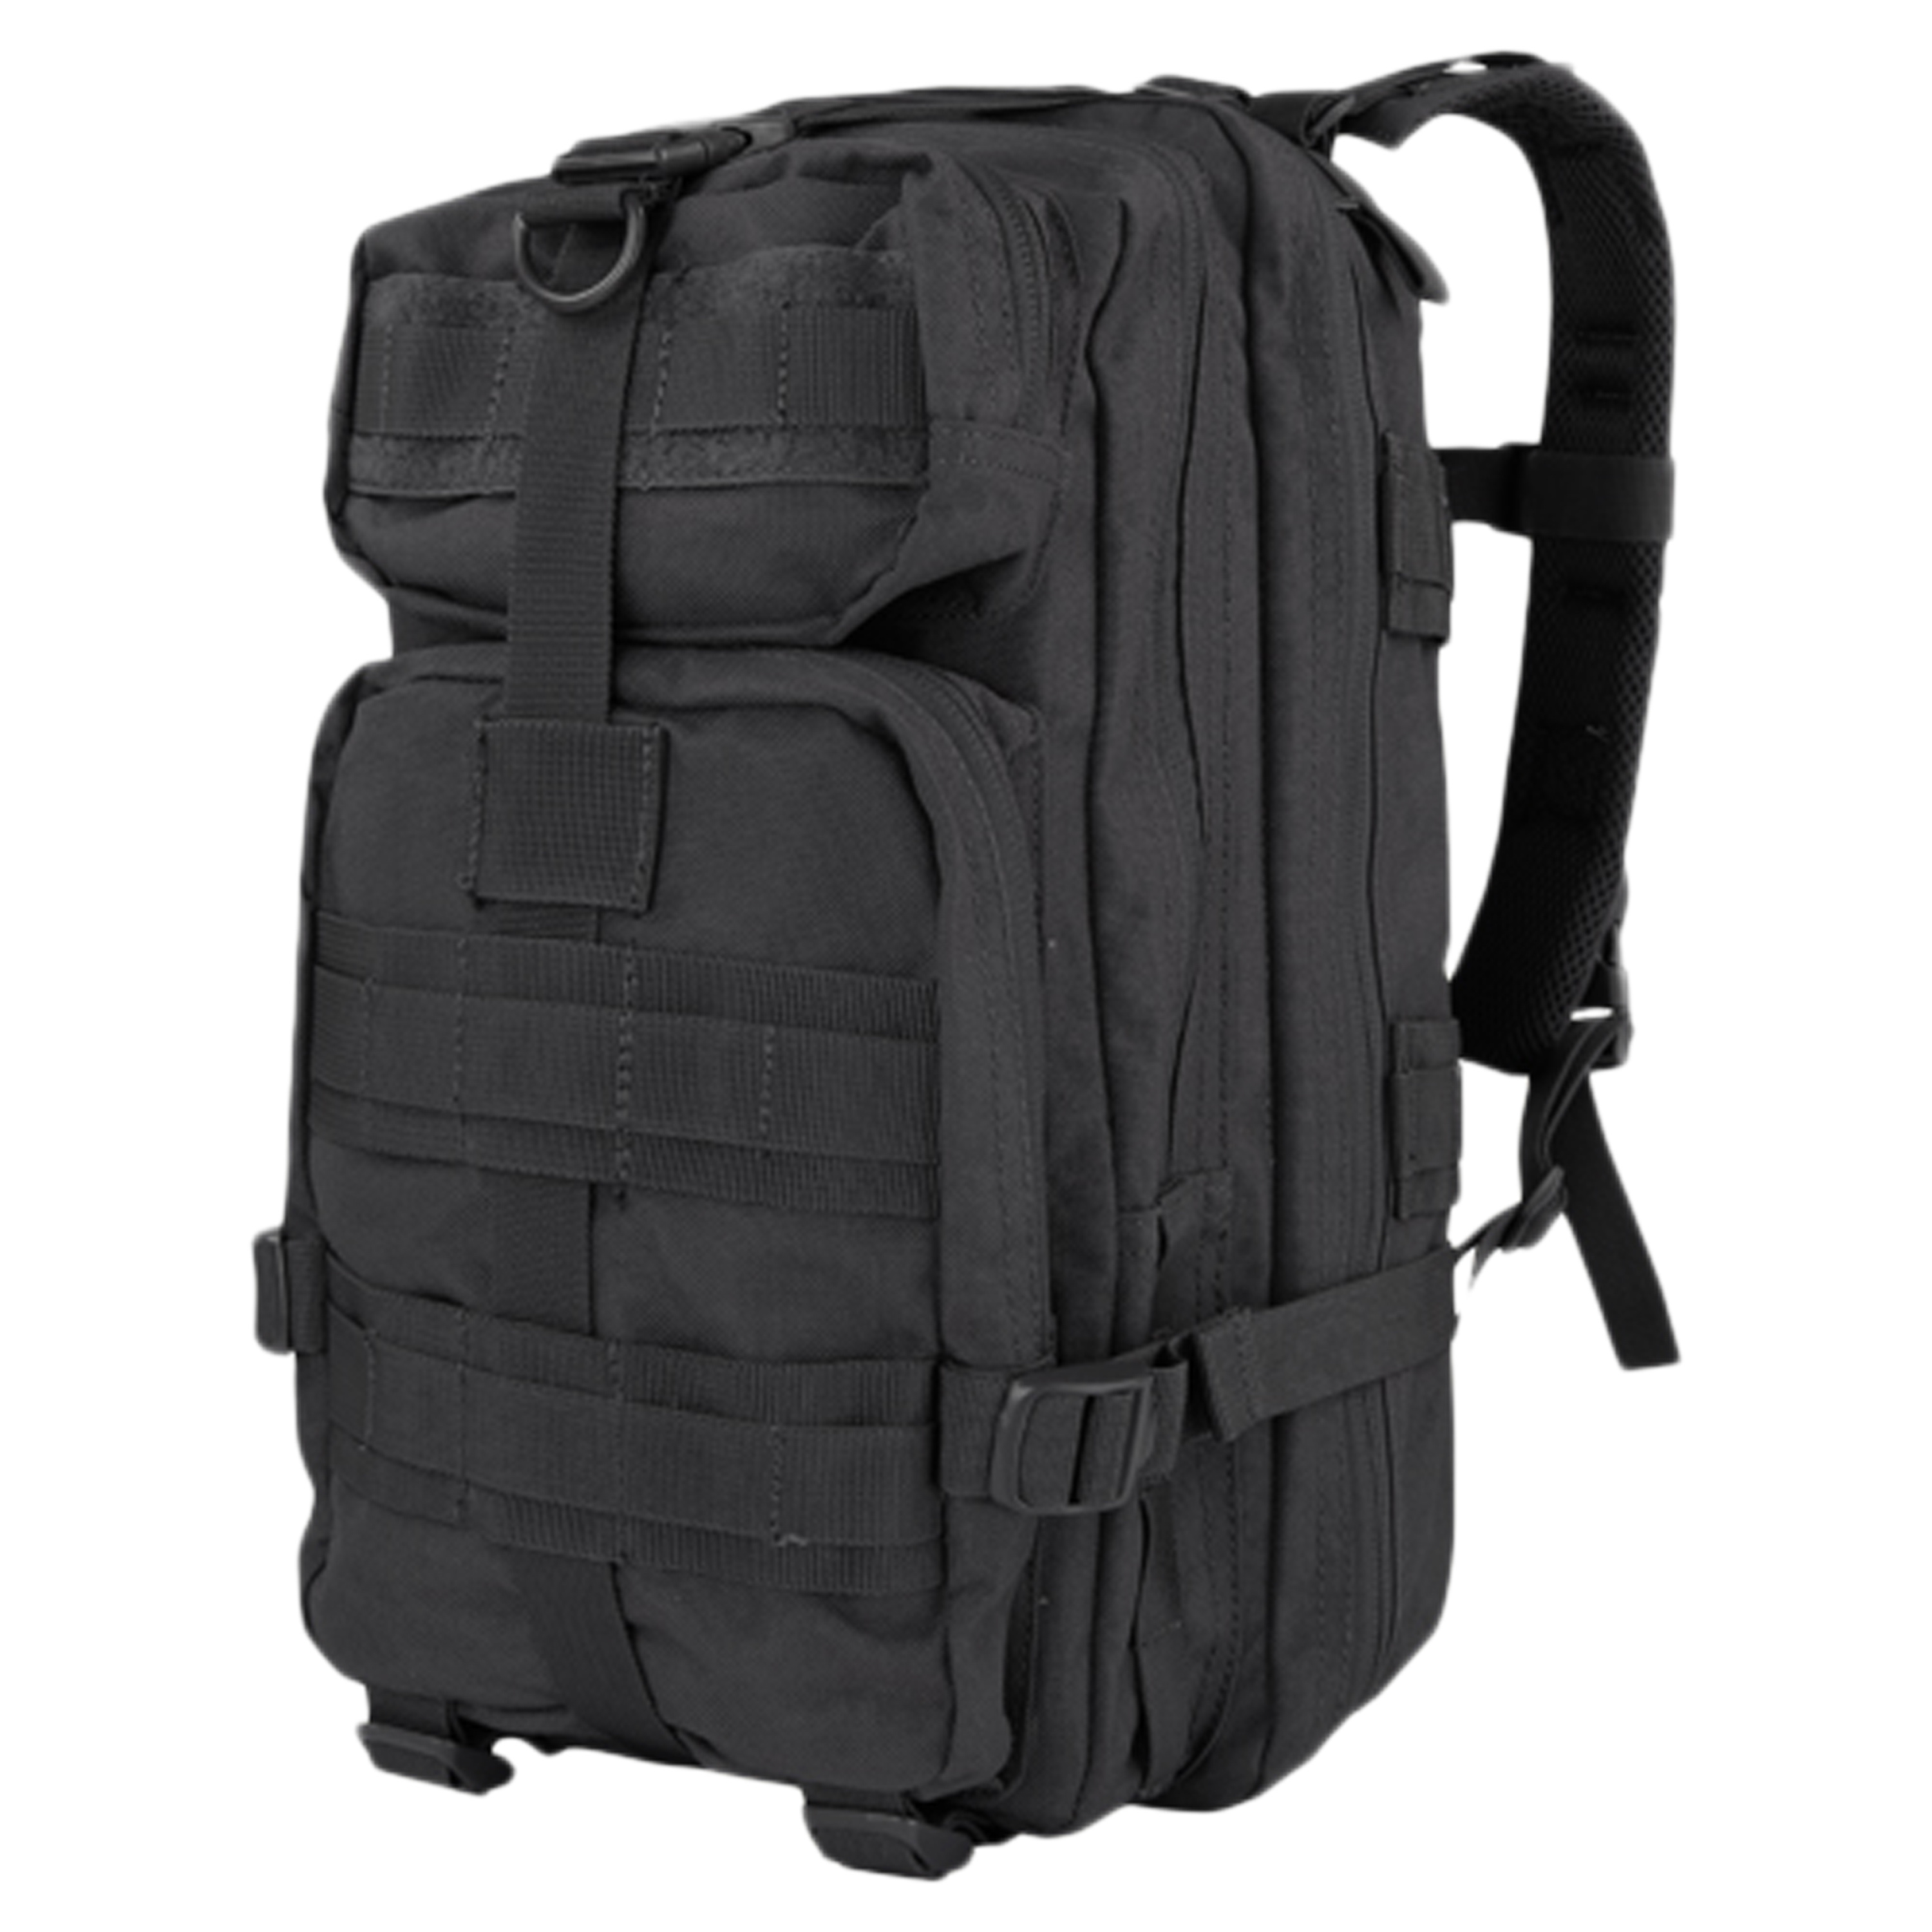 Condor Backpack Assault Pack Compact black